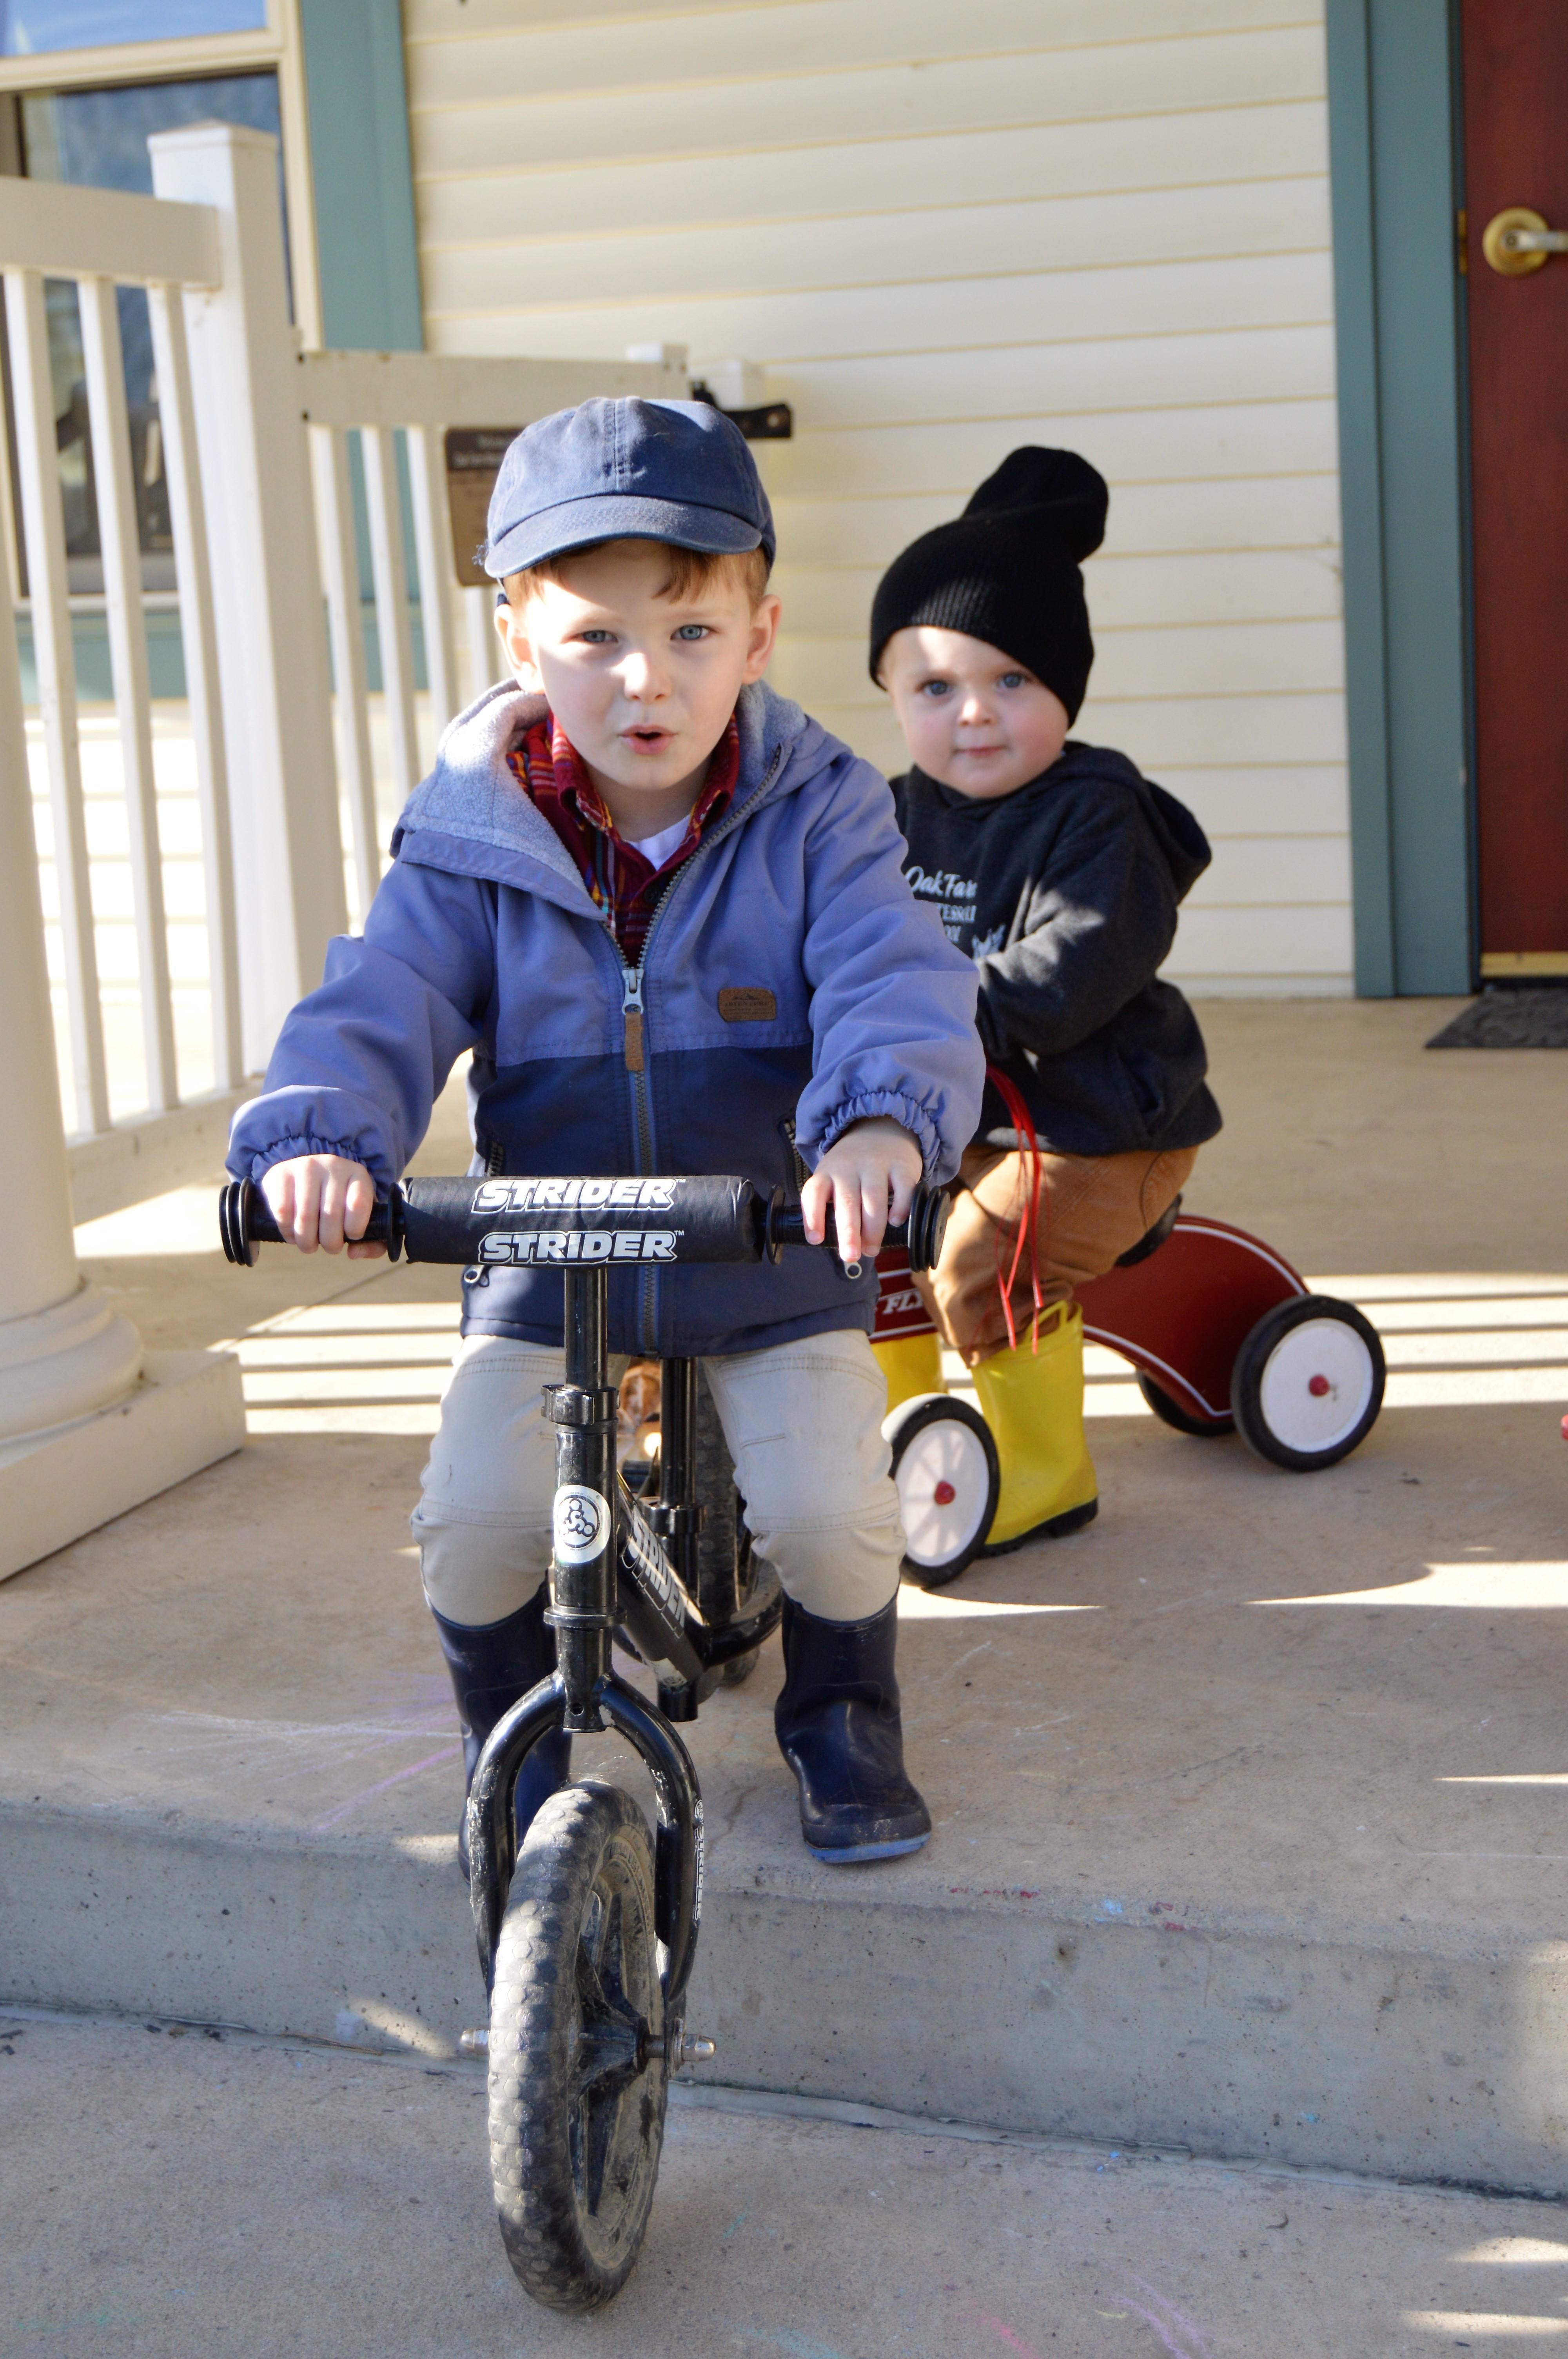 Toddlers riding bikes